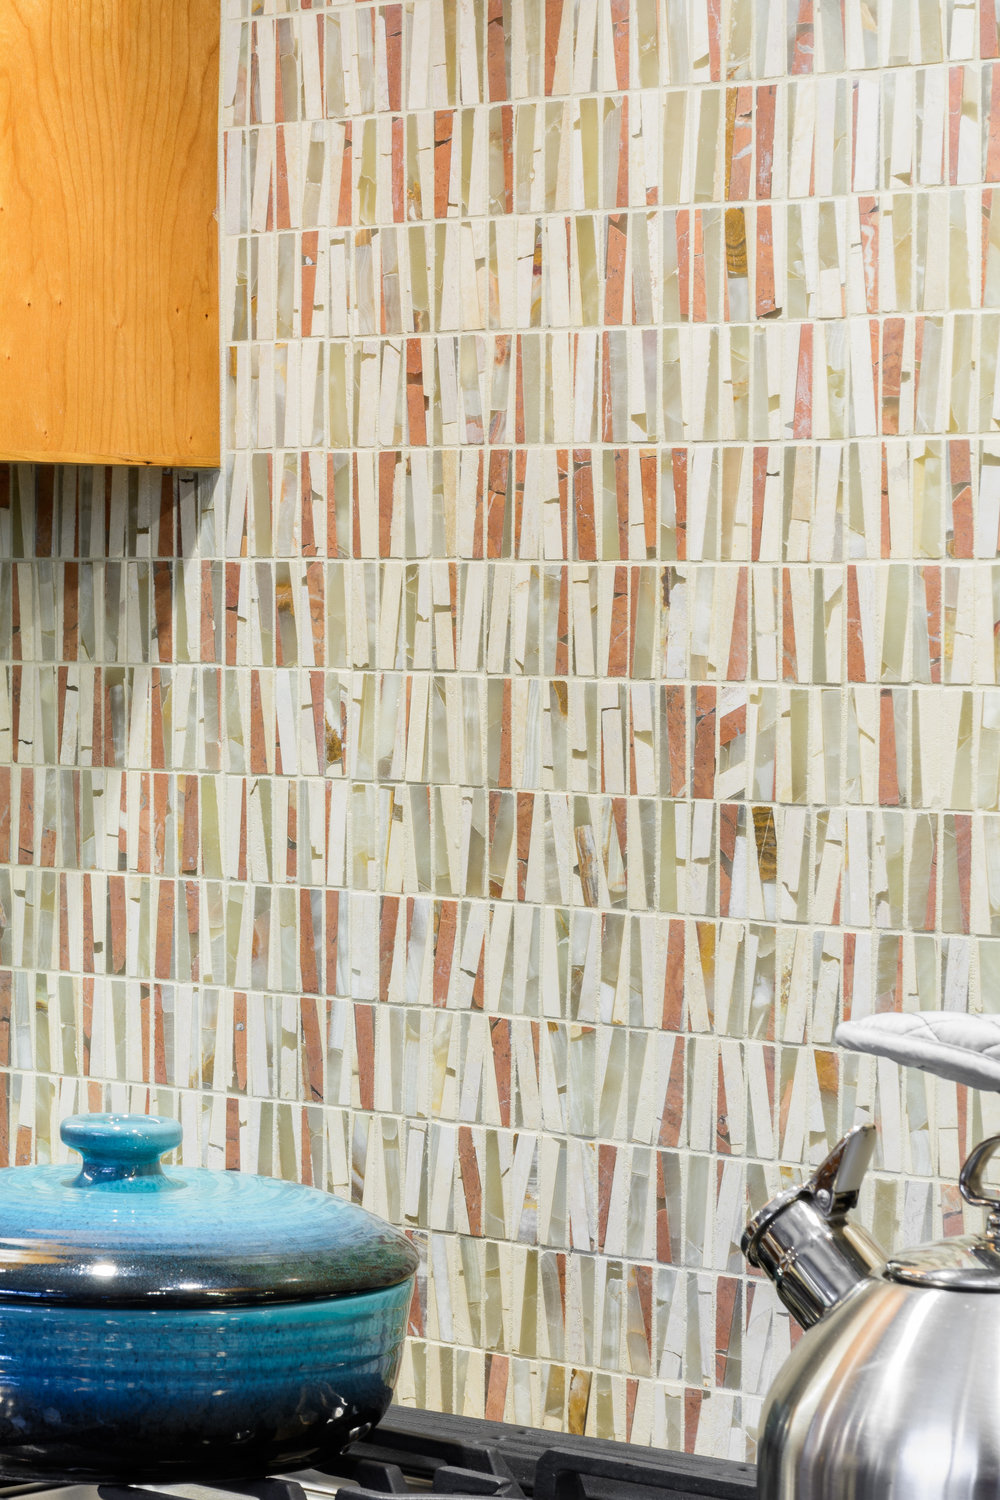 This mosaic tile backsplash over the kitchen range offers a distinctive design